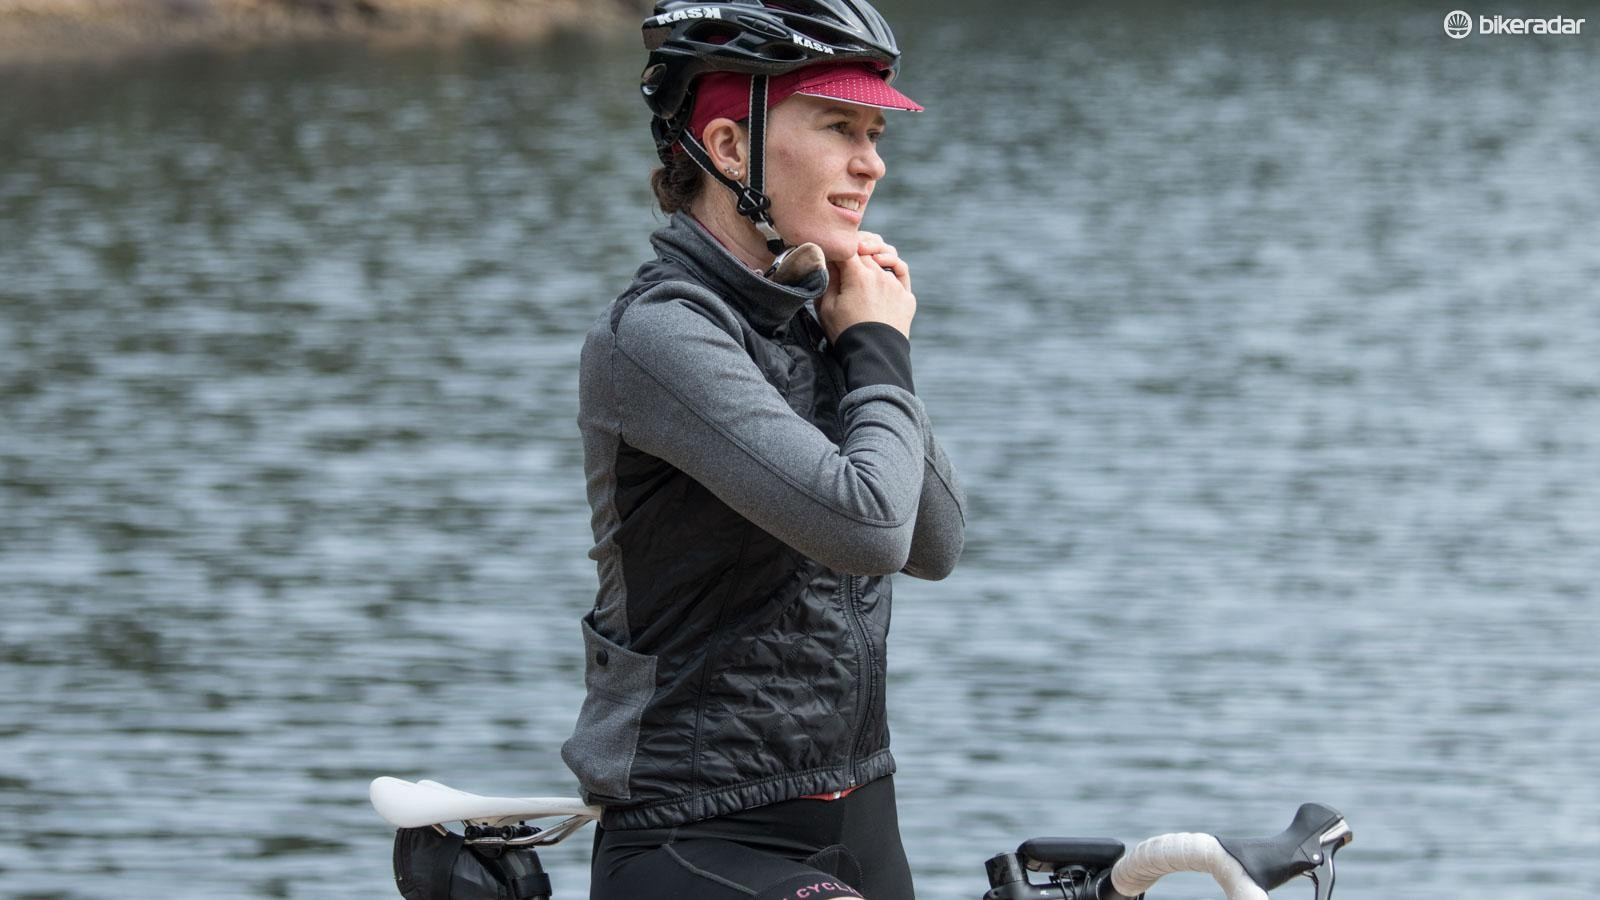 Cafe du Cycliste's Heidi jacket is a timeless looking winter staple you'll be reaching for often